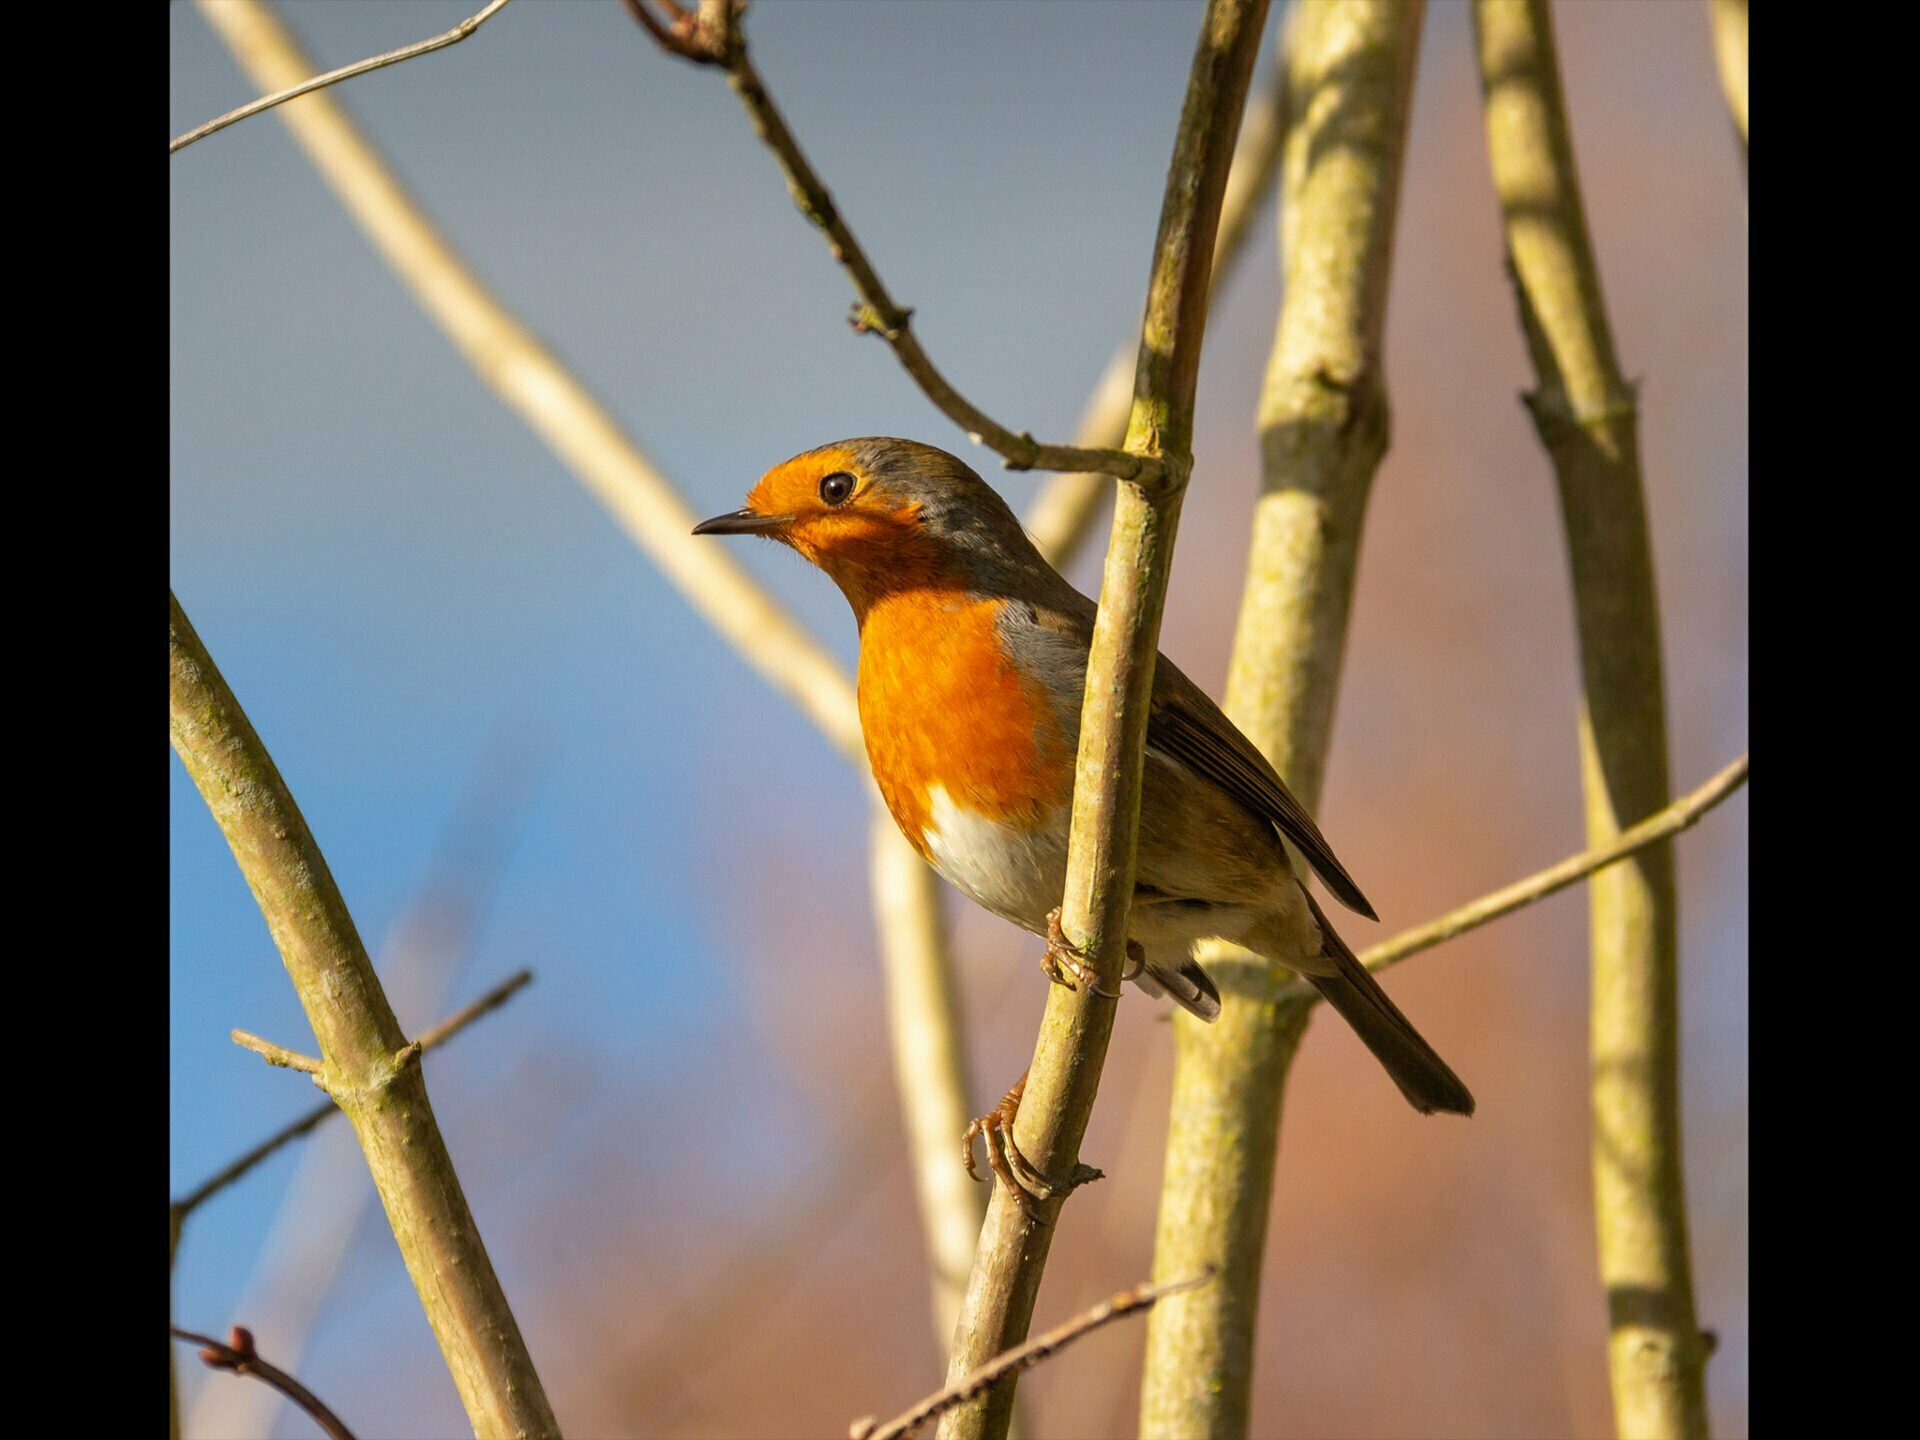 A Robin sitting on a branch